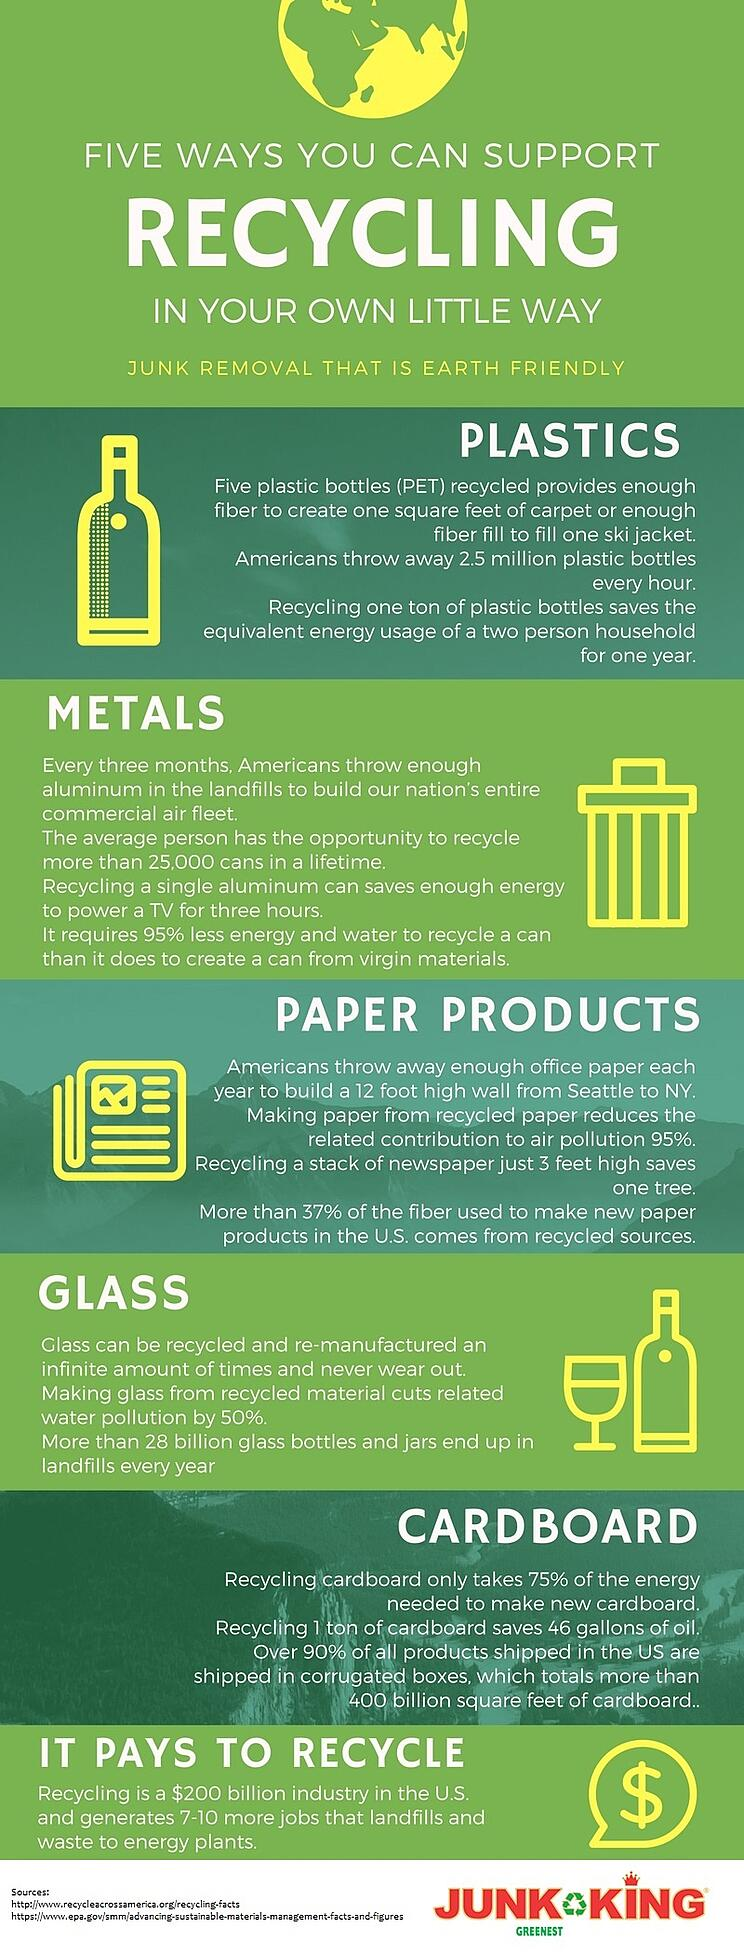 support-recycling-infographic.jpg